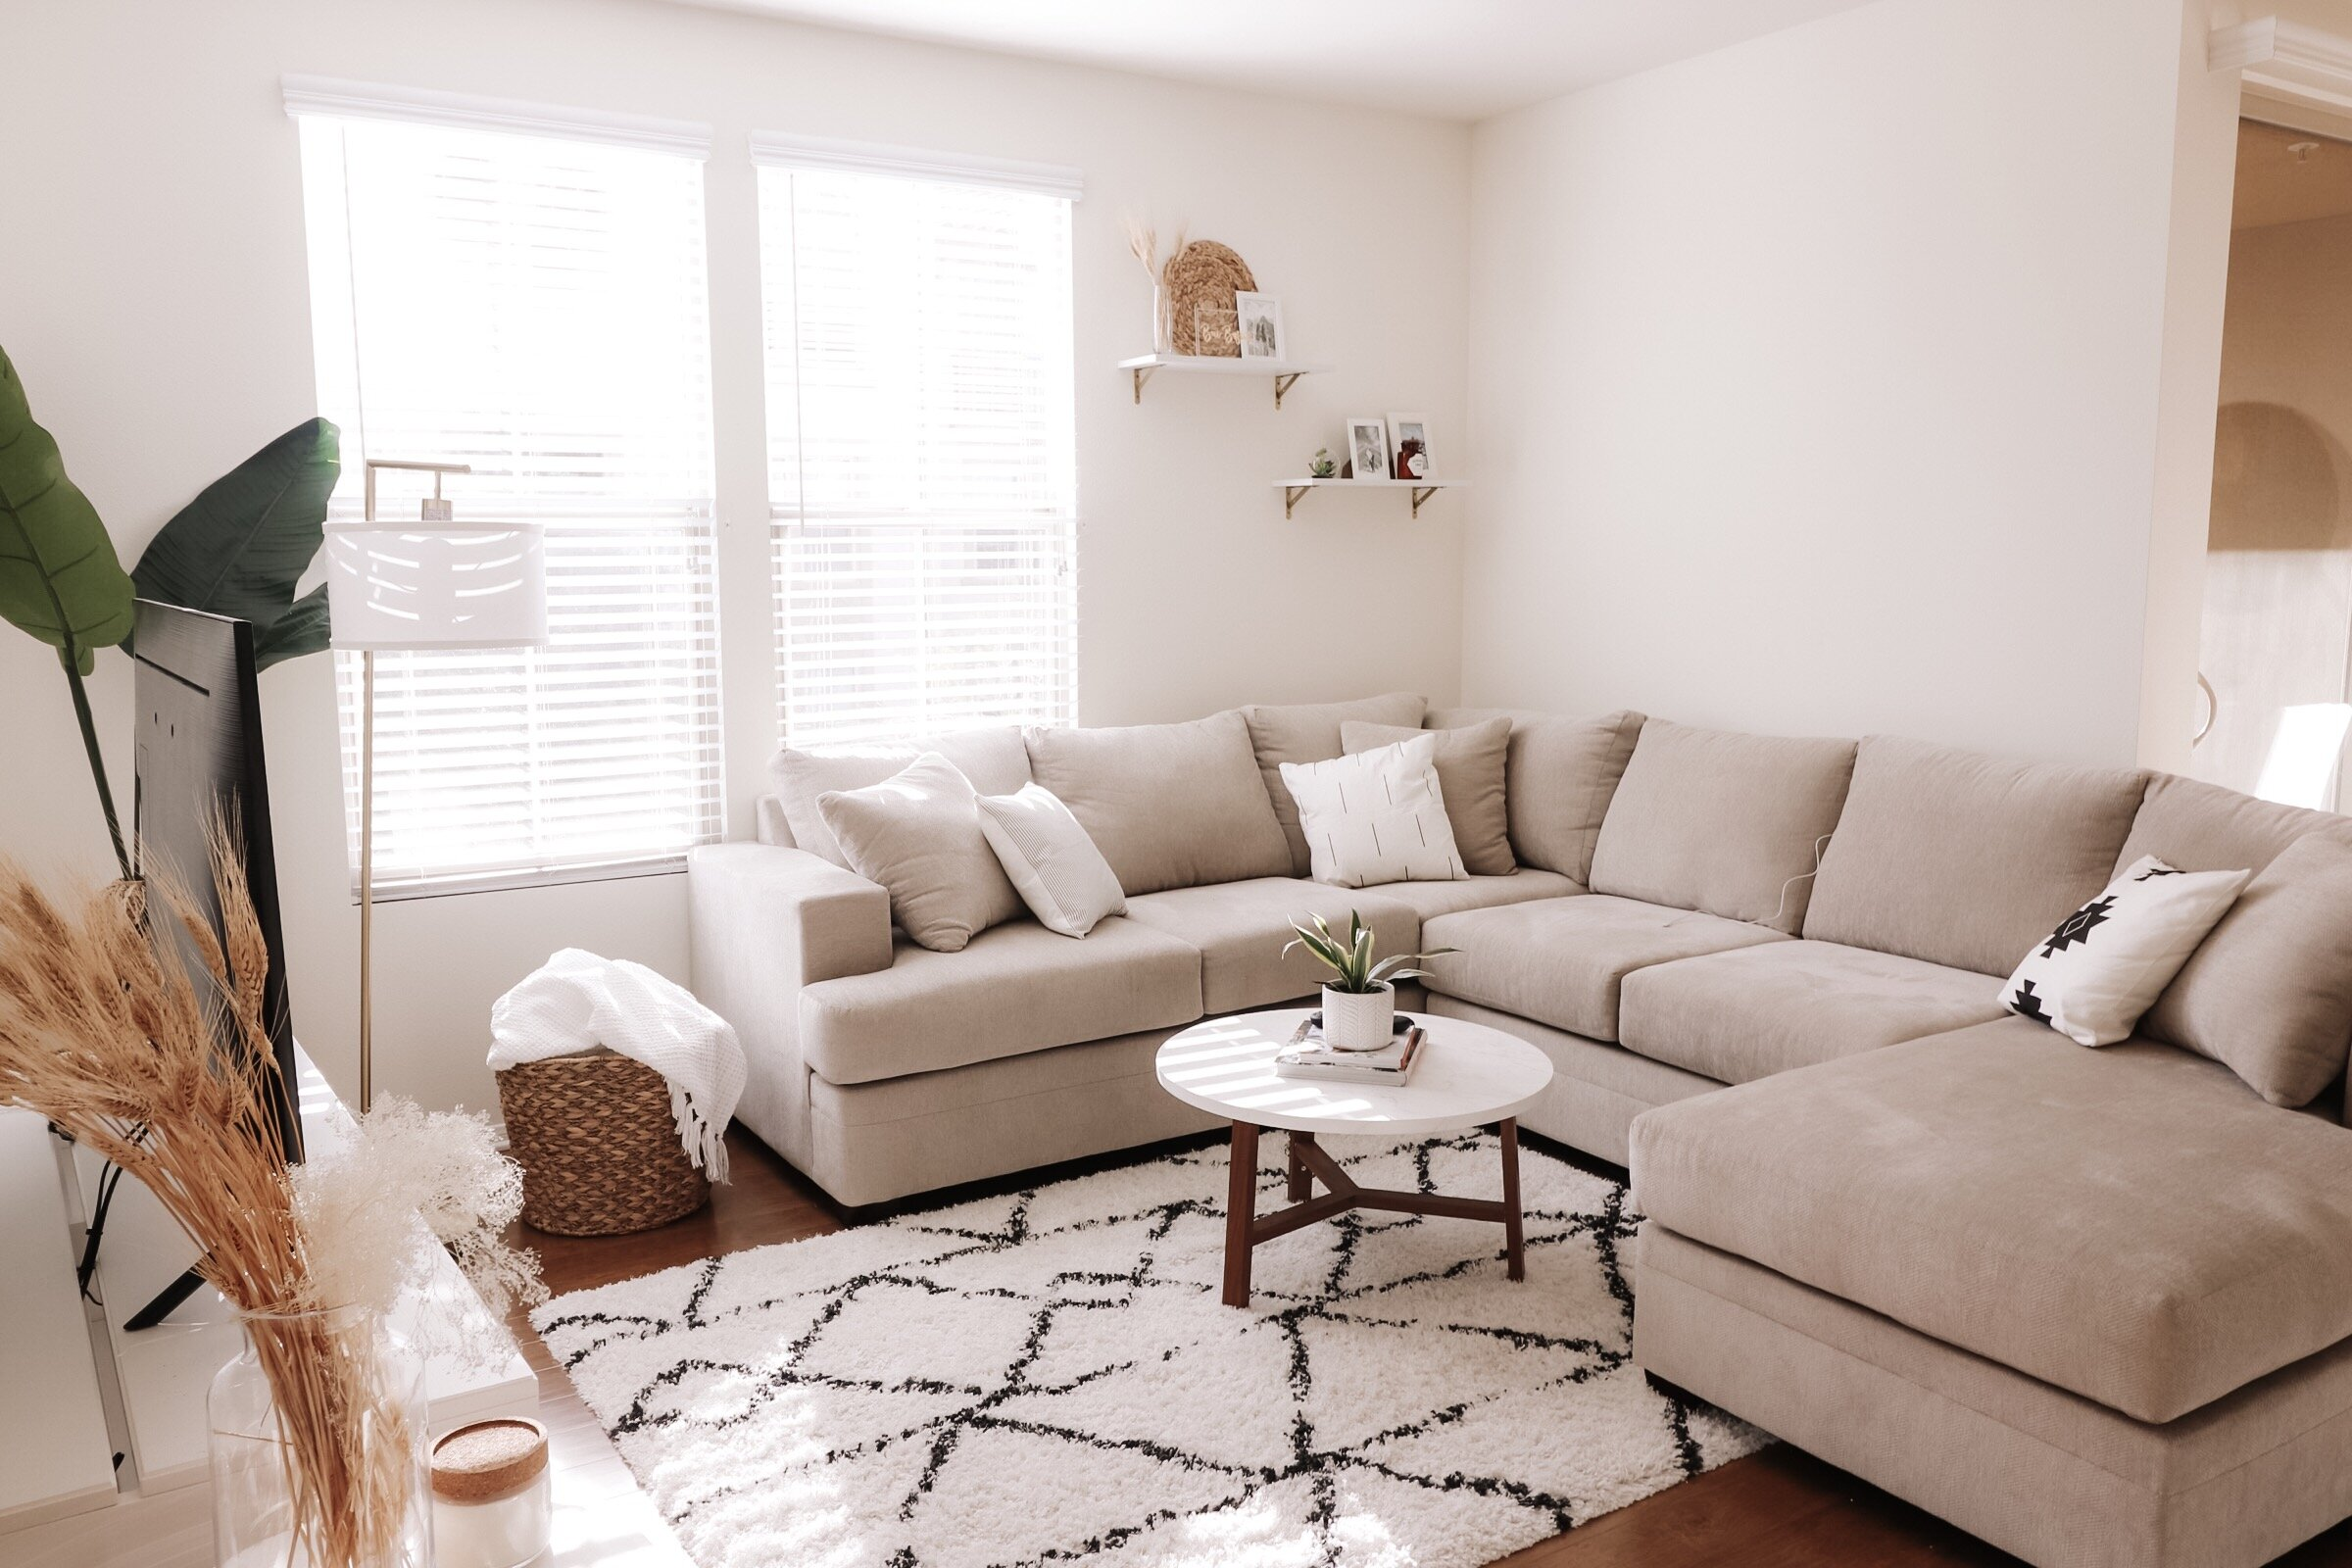 HOME DECOR: HOW TO DECORATE ON A BUDGET - Read More →